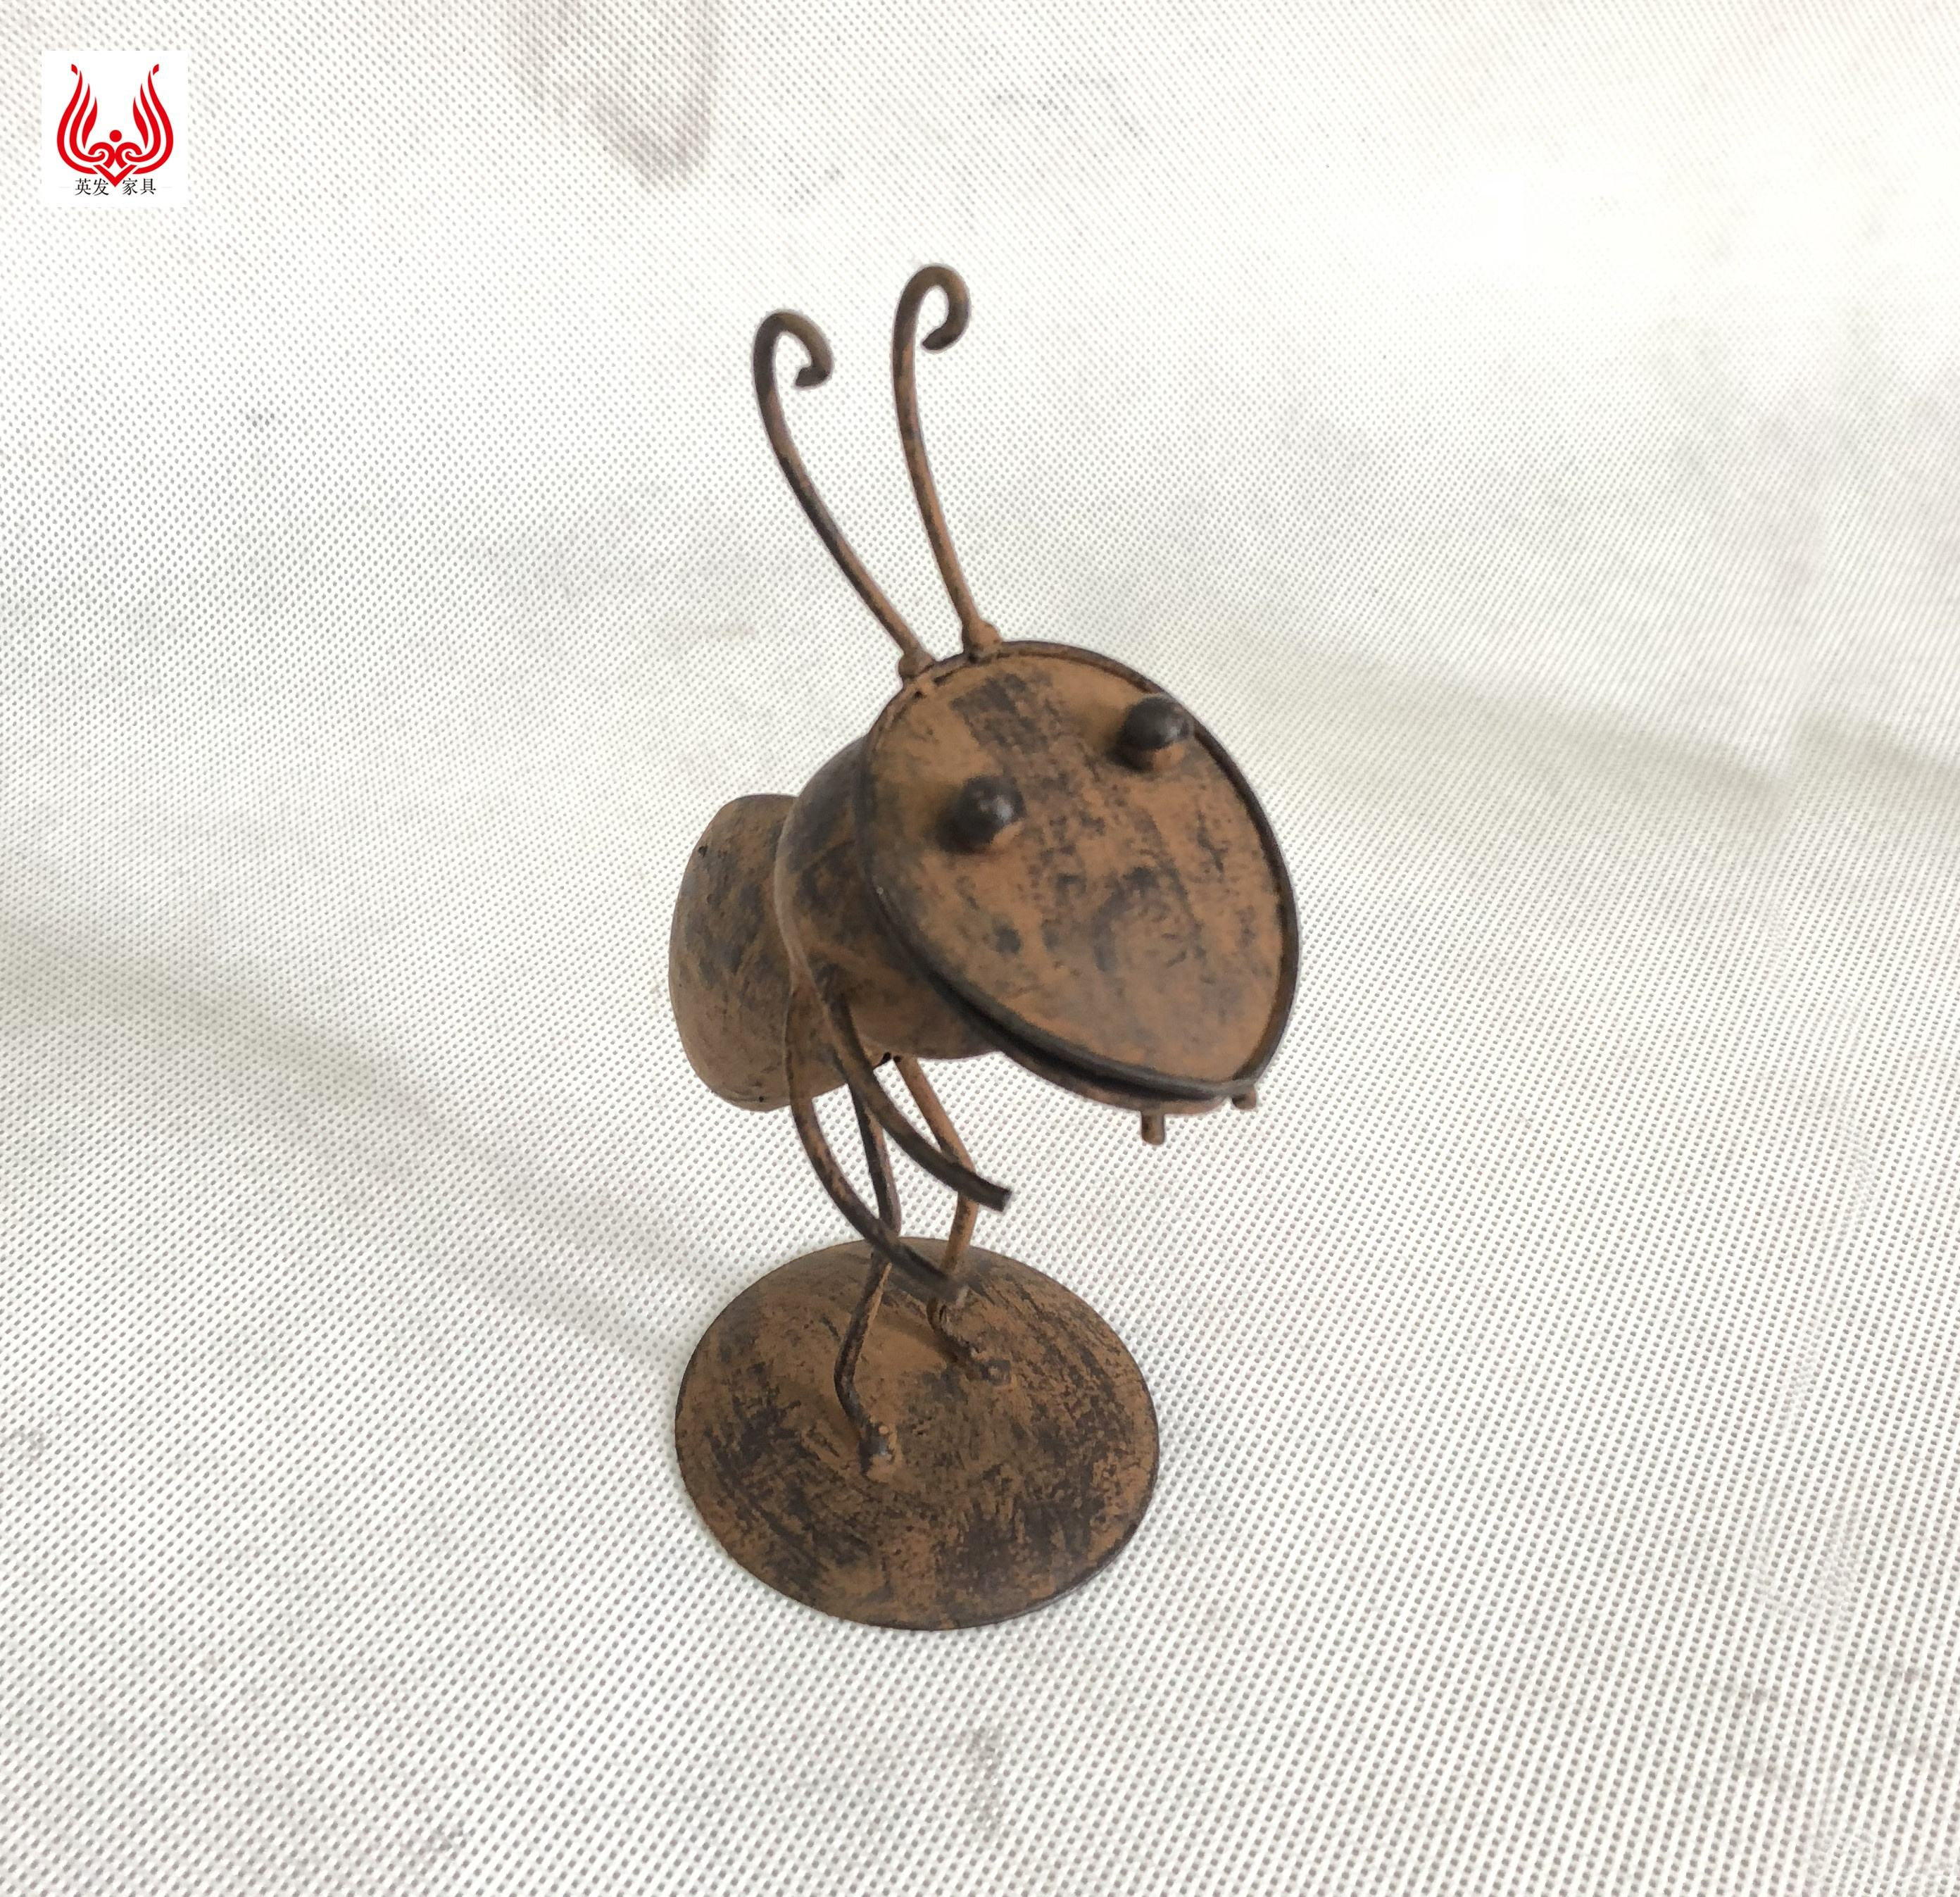 YINFA Handmade Antique Metal Ant Model for Decoration